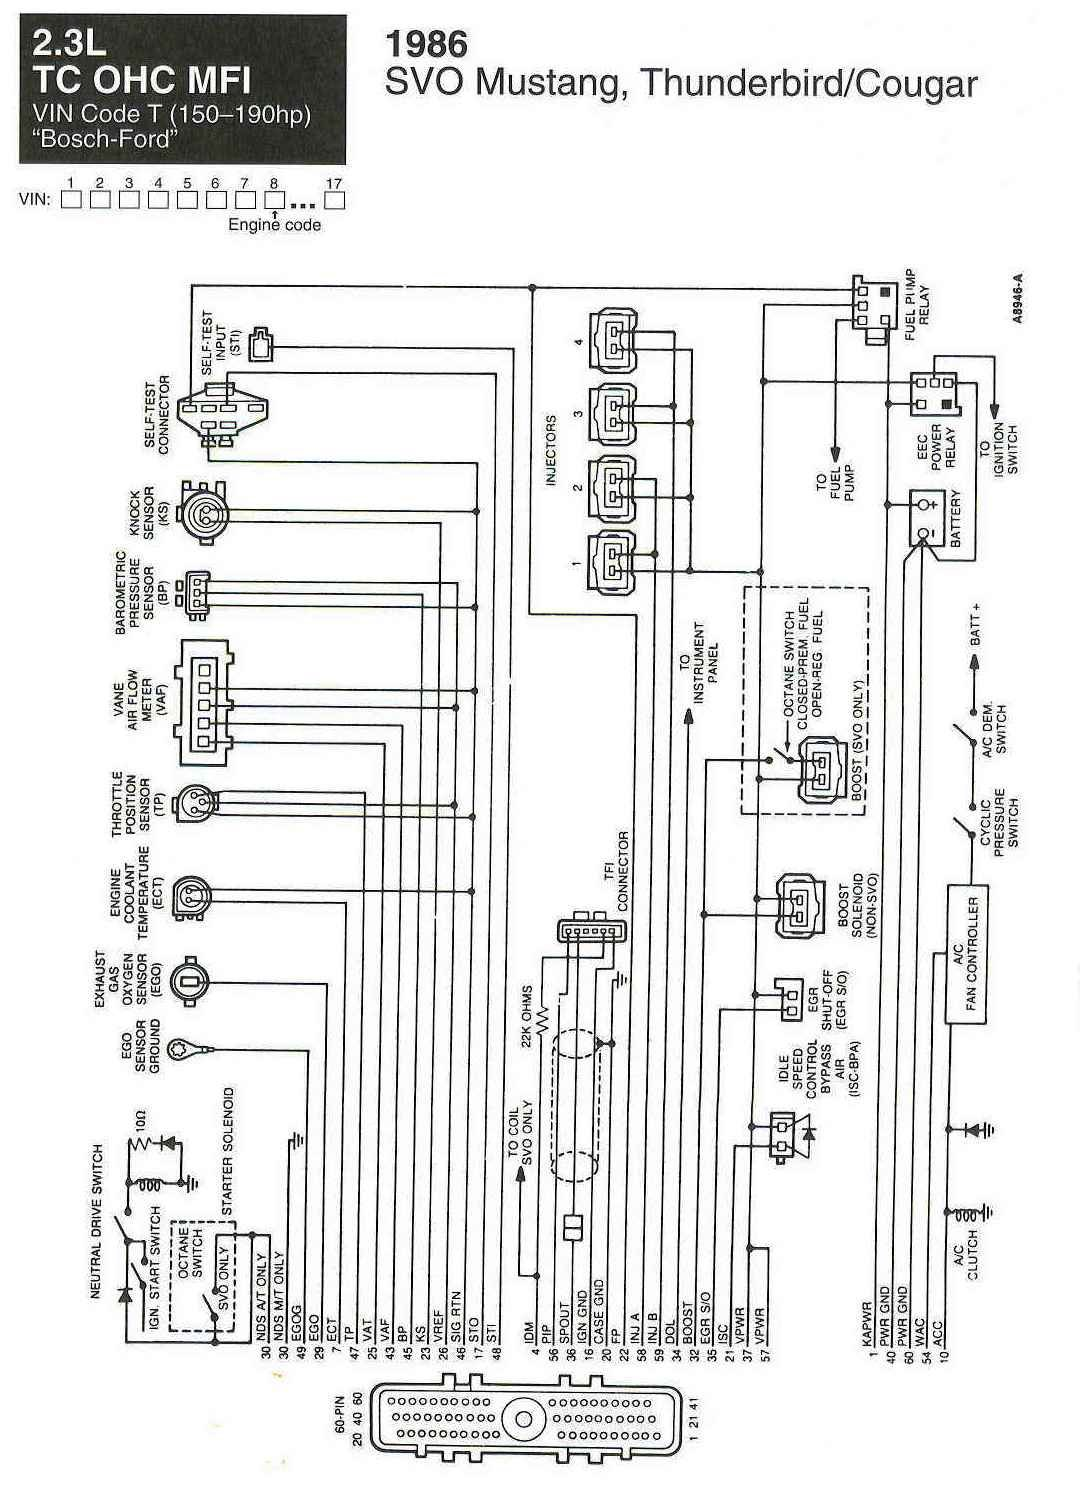 88 thunderbird fuse box 1970 ford thunderbird fuse box diagram 1986 ford thunderbird cruise control wiring | wiring library #15